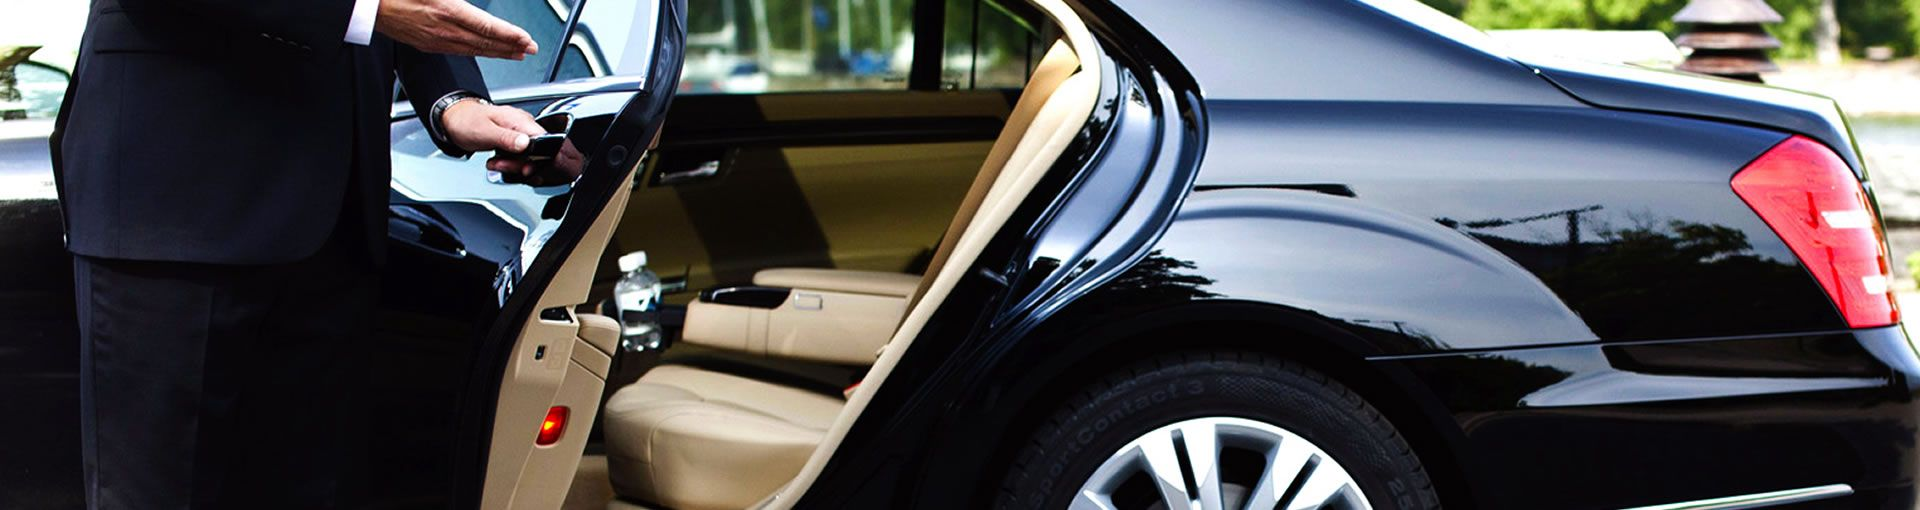 Luxury Transportation Exquisite Seattle's Limos